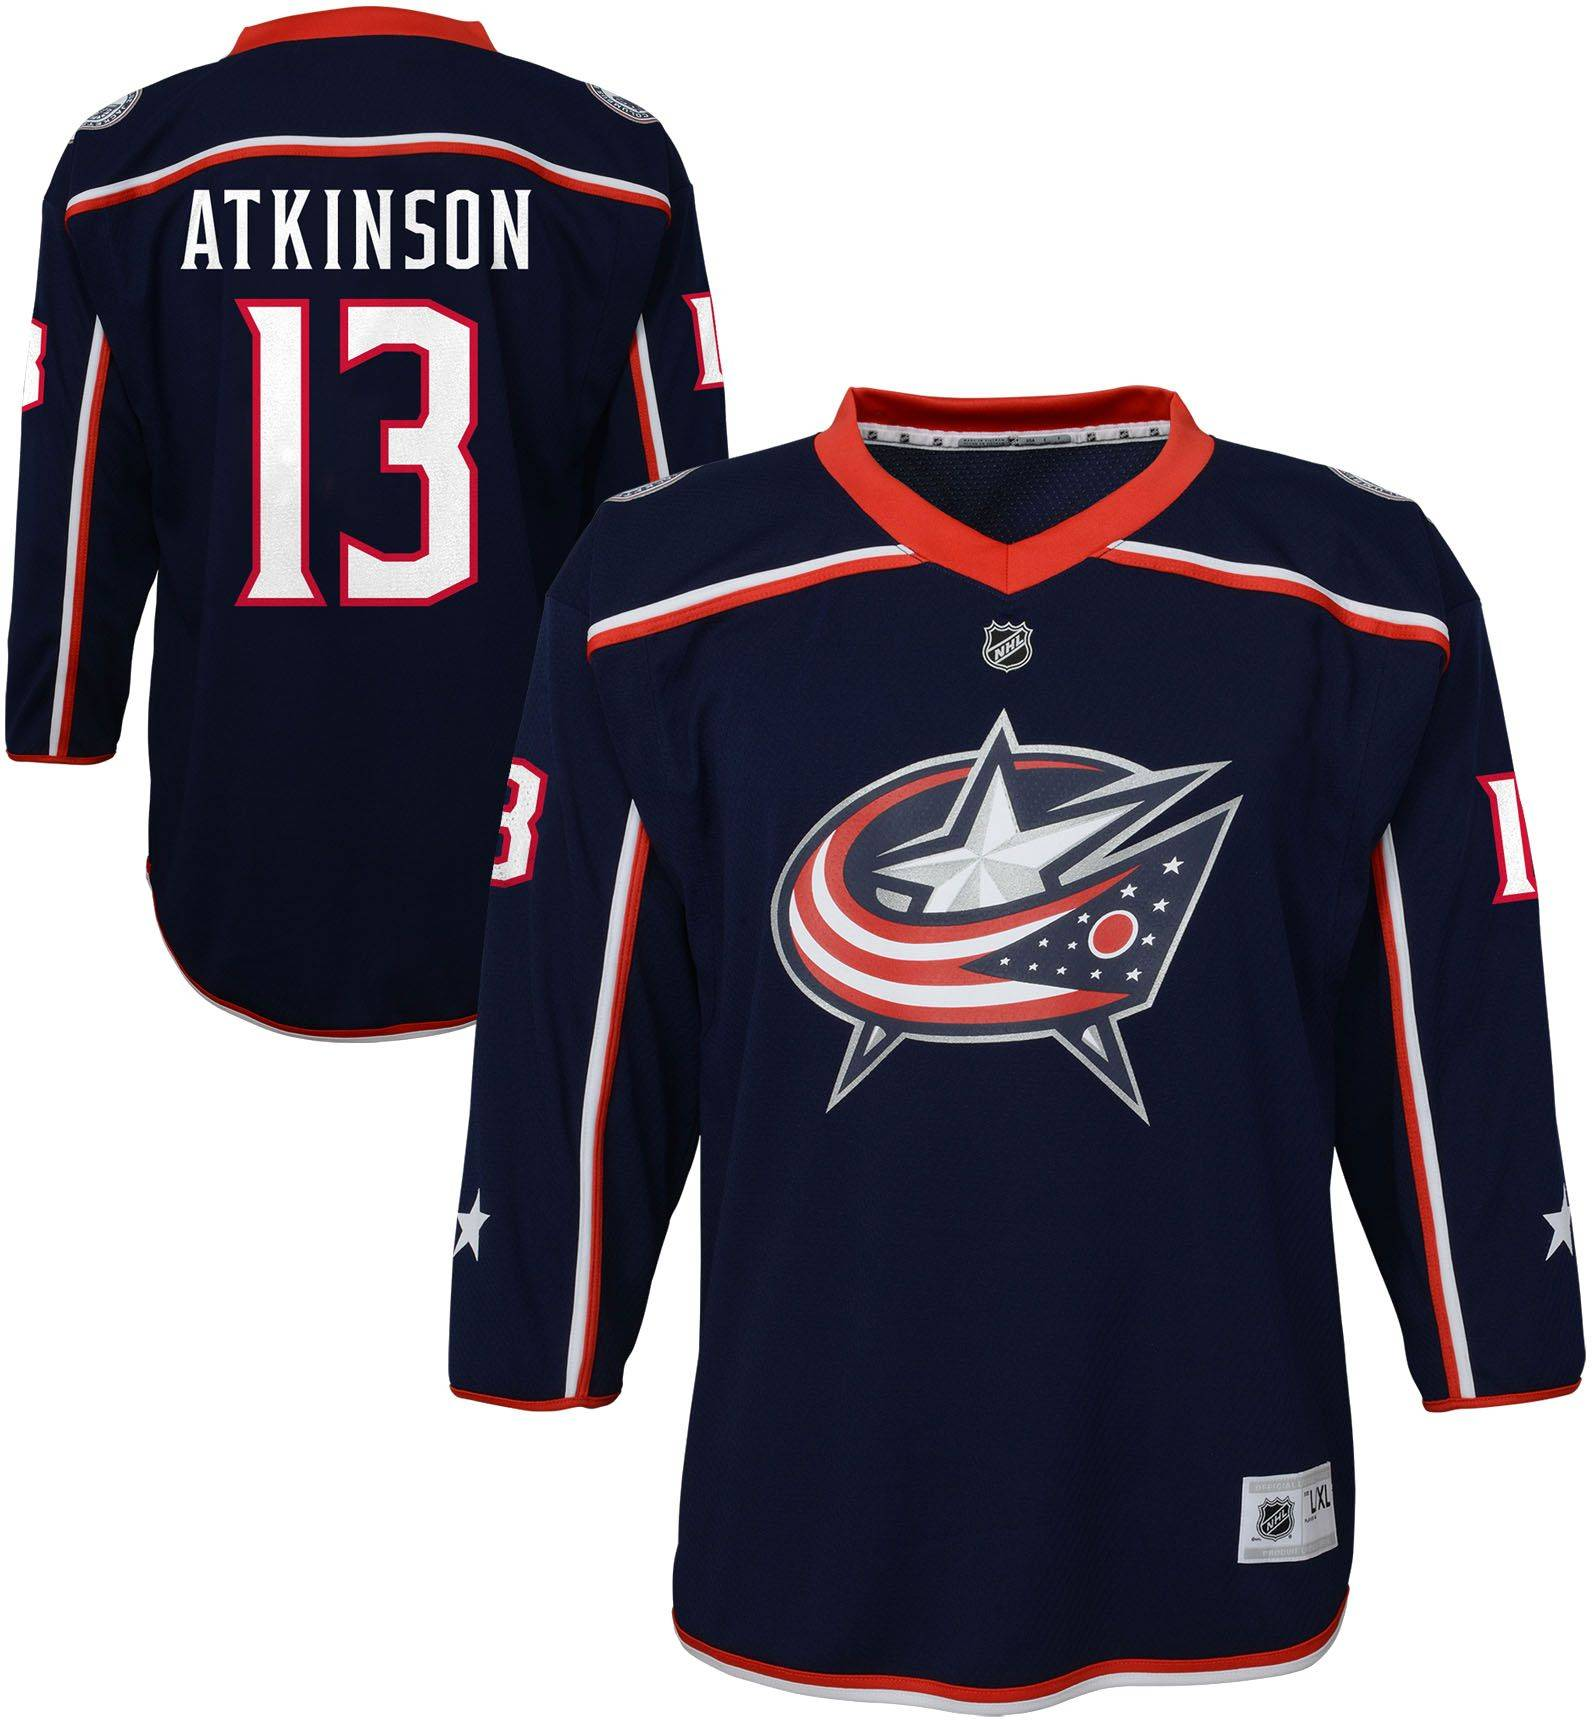 NHL Youth Columbus Blue Jackets Cam Atkinson #13 Replica Home Jersey, Kids, Small/Medium